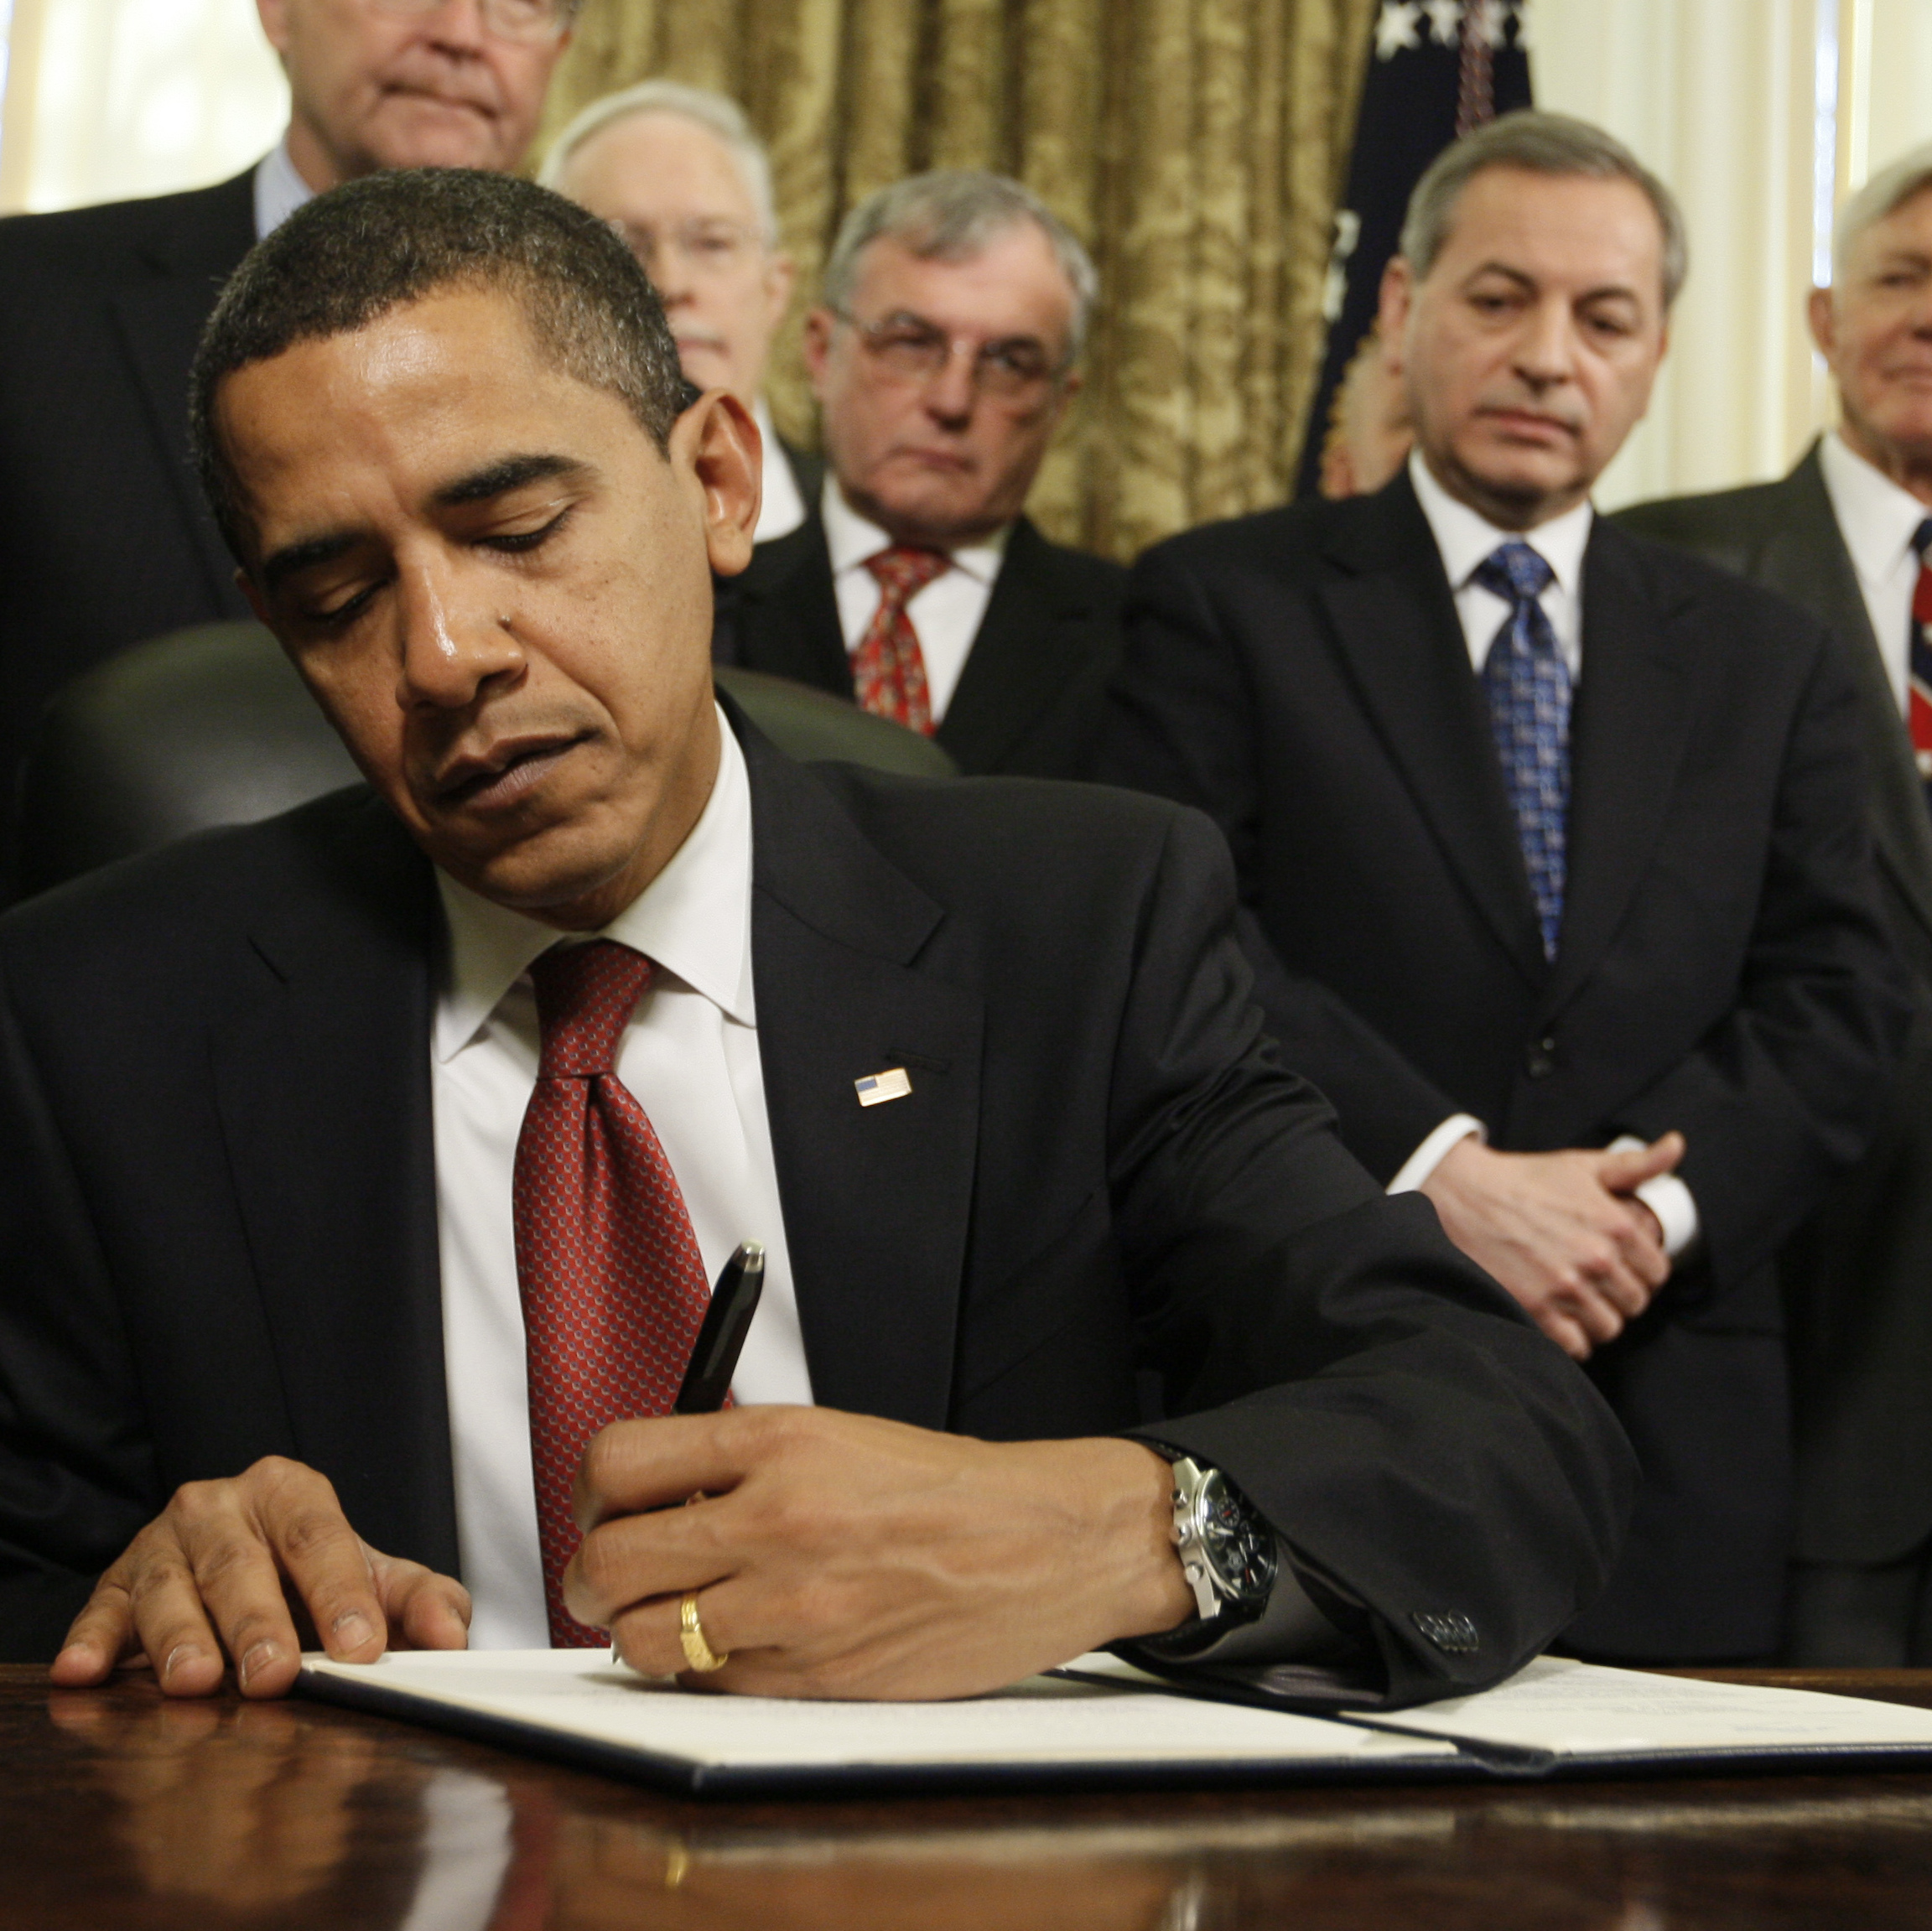 President Obama signs a series of executive orders on Jan. 22, 2009, including one closing the prison at Guantanamo Bay.